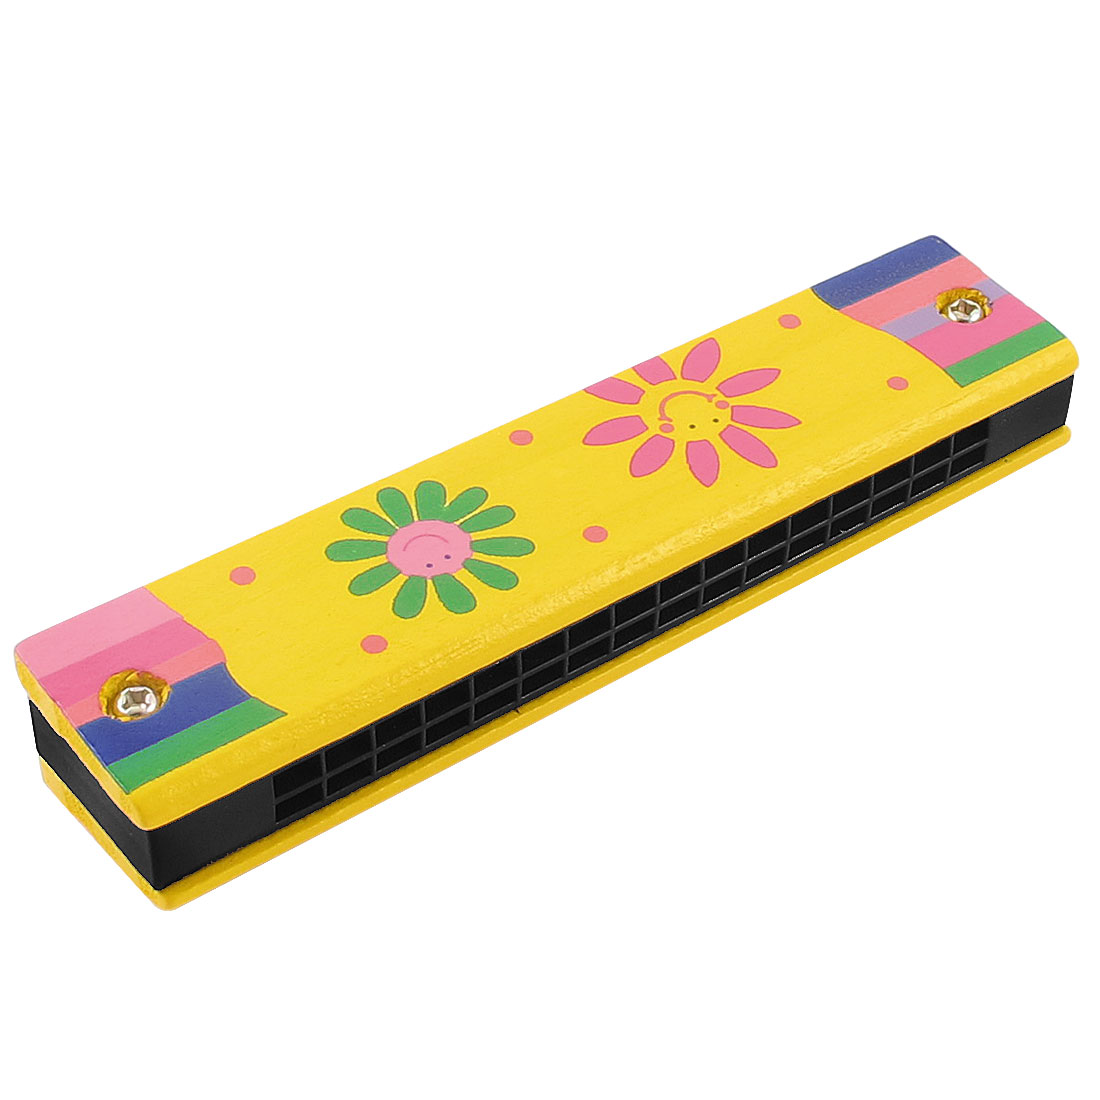 Wooden Harmonica Mouth Organ w Dual Rows 32 Holes Yellow Floral Cartoon Print Educational Toy for Children